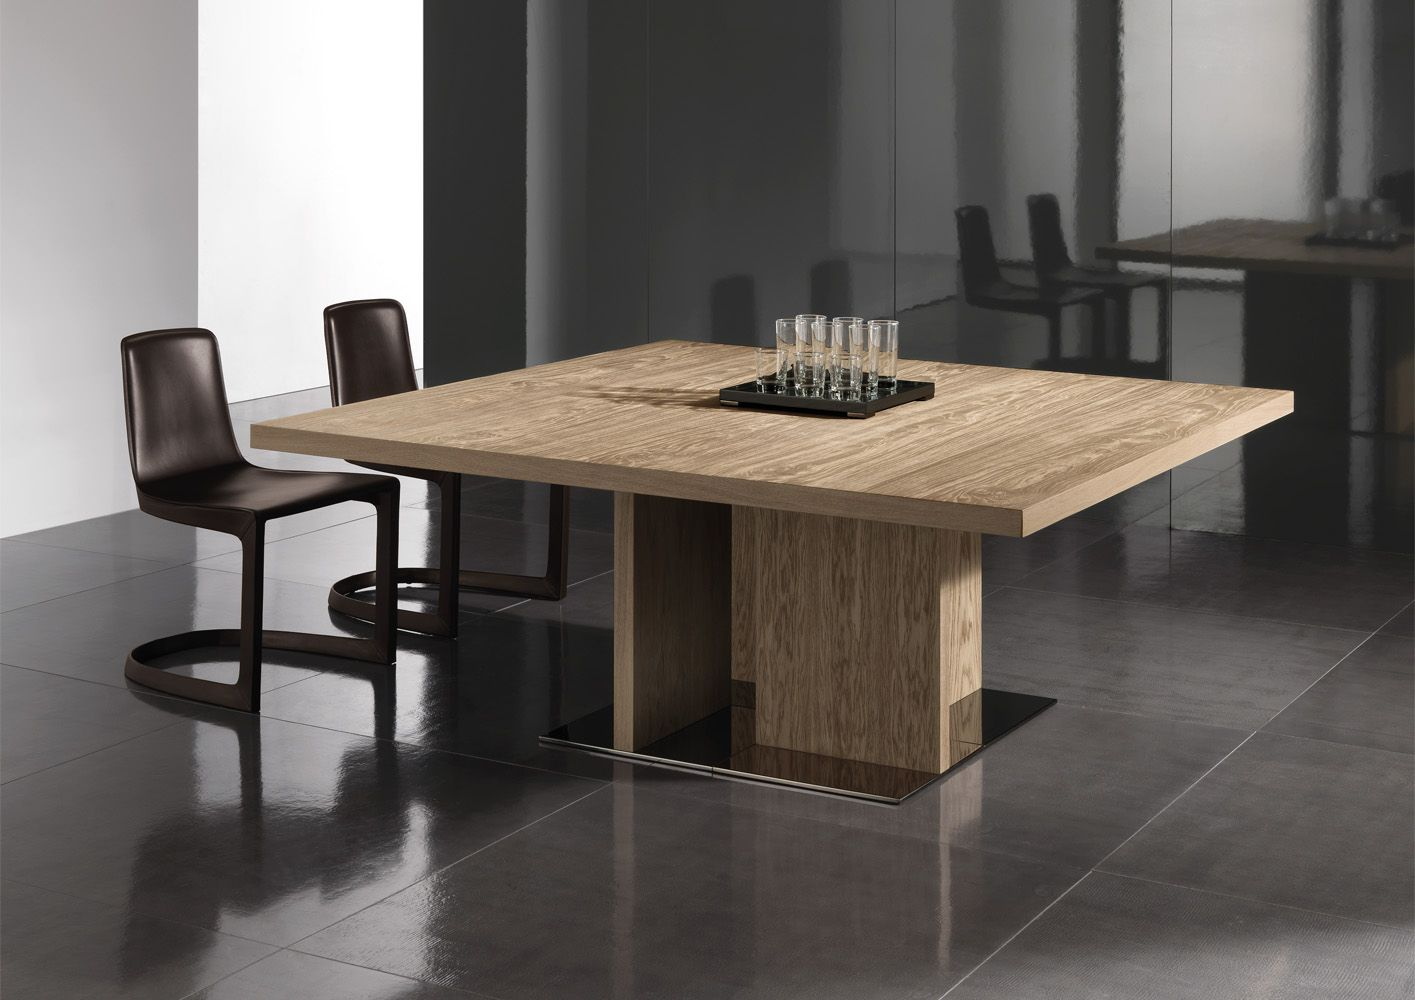 Dining Room, : Beautiful Dining Room Decoration Using Square Oak Wood  Minotti Dining Table Along With Dark Brown Pedestal Dining Chair And Grey  Ceramic Home